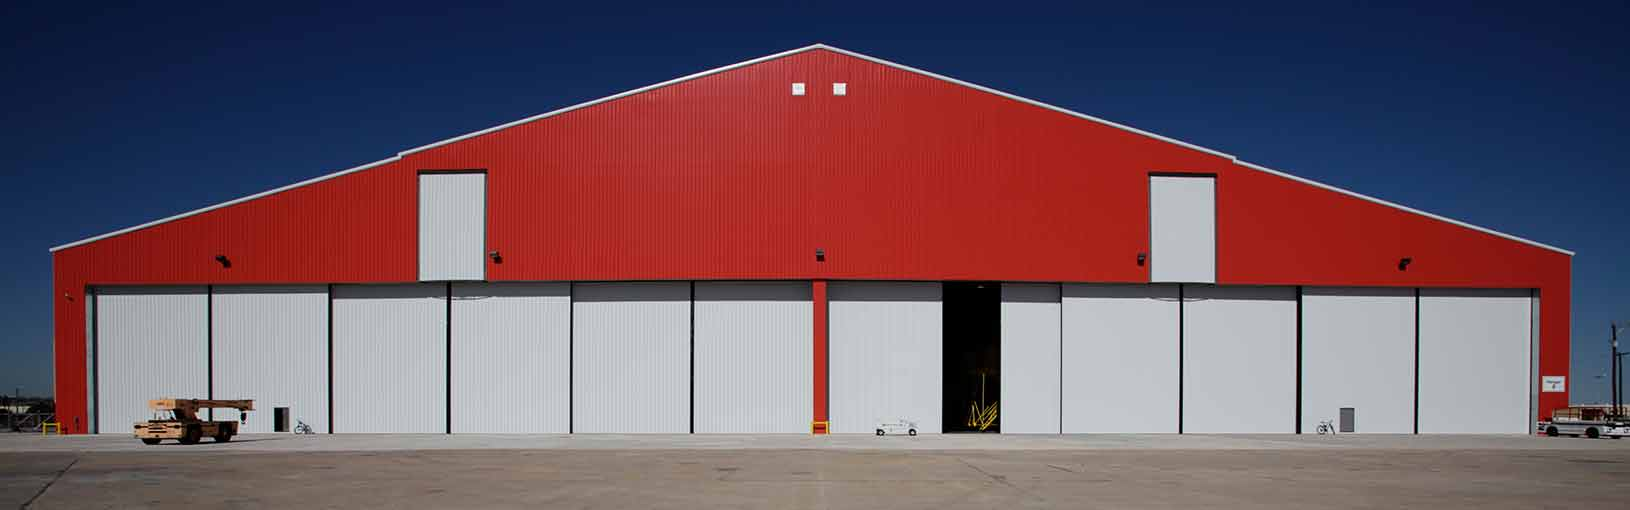 Bottom Rolling Hangar Doors on a red Hangar